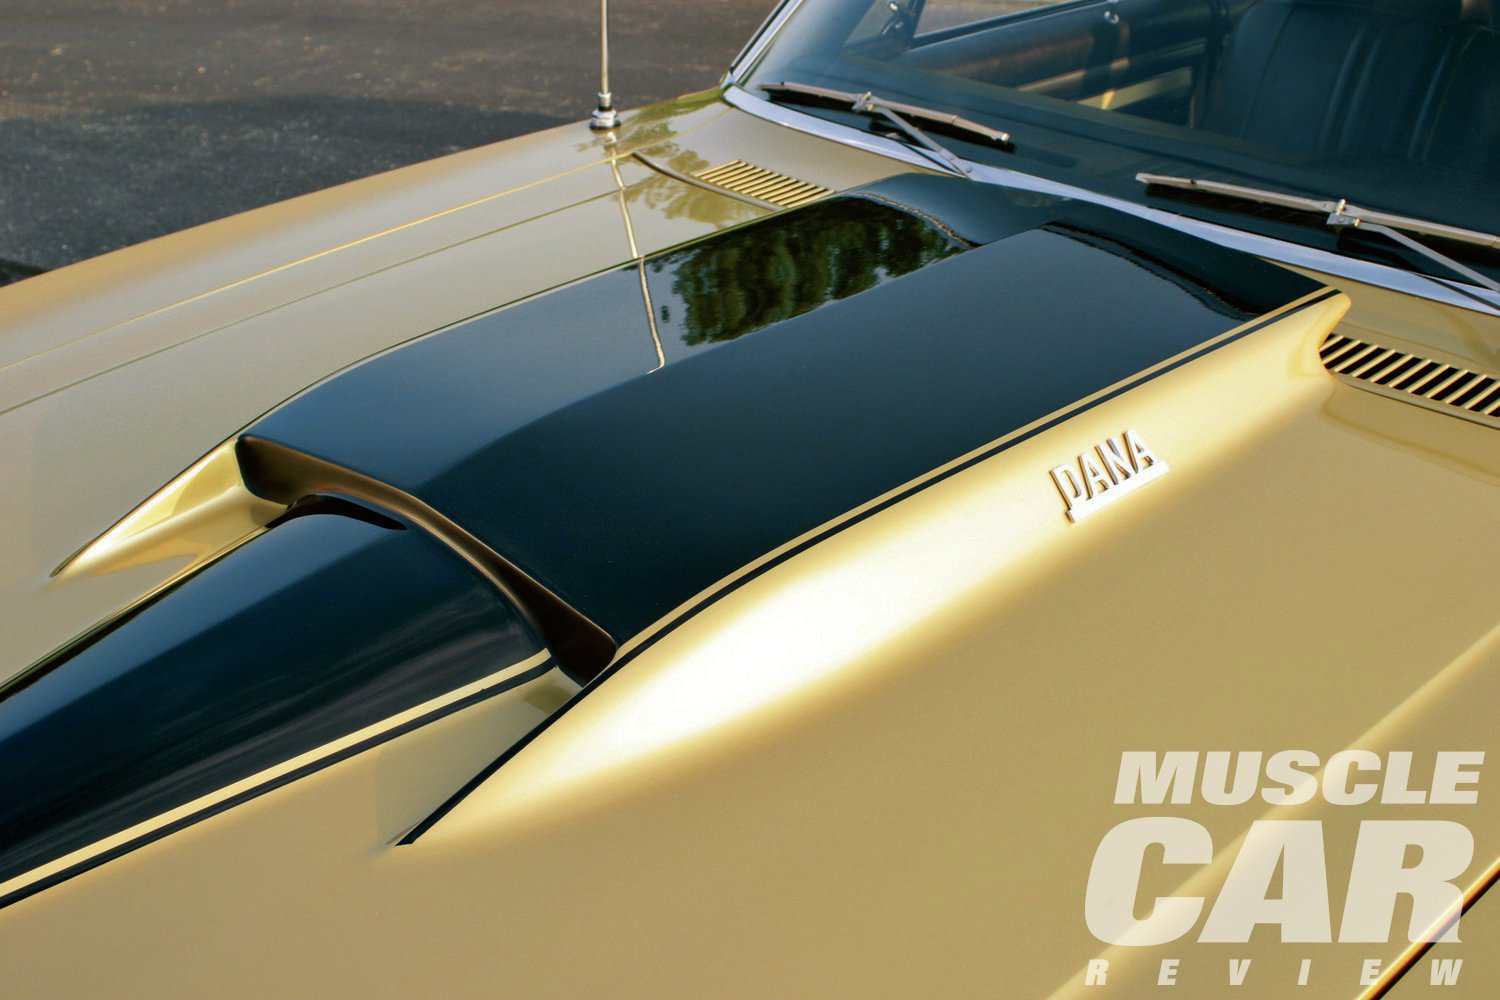 While the badging might have been subtle, the fiberglass Stinger hood was anything but.